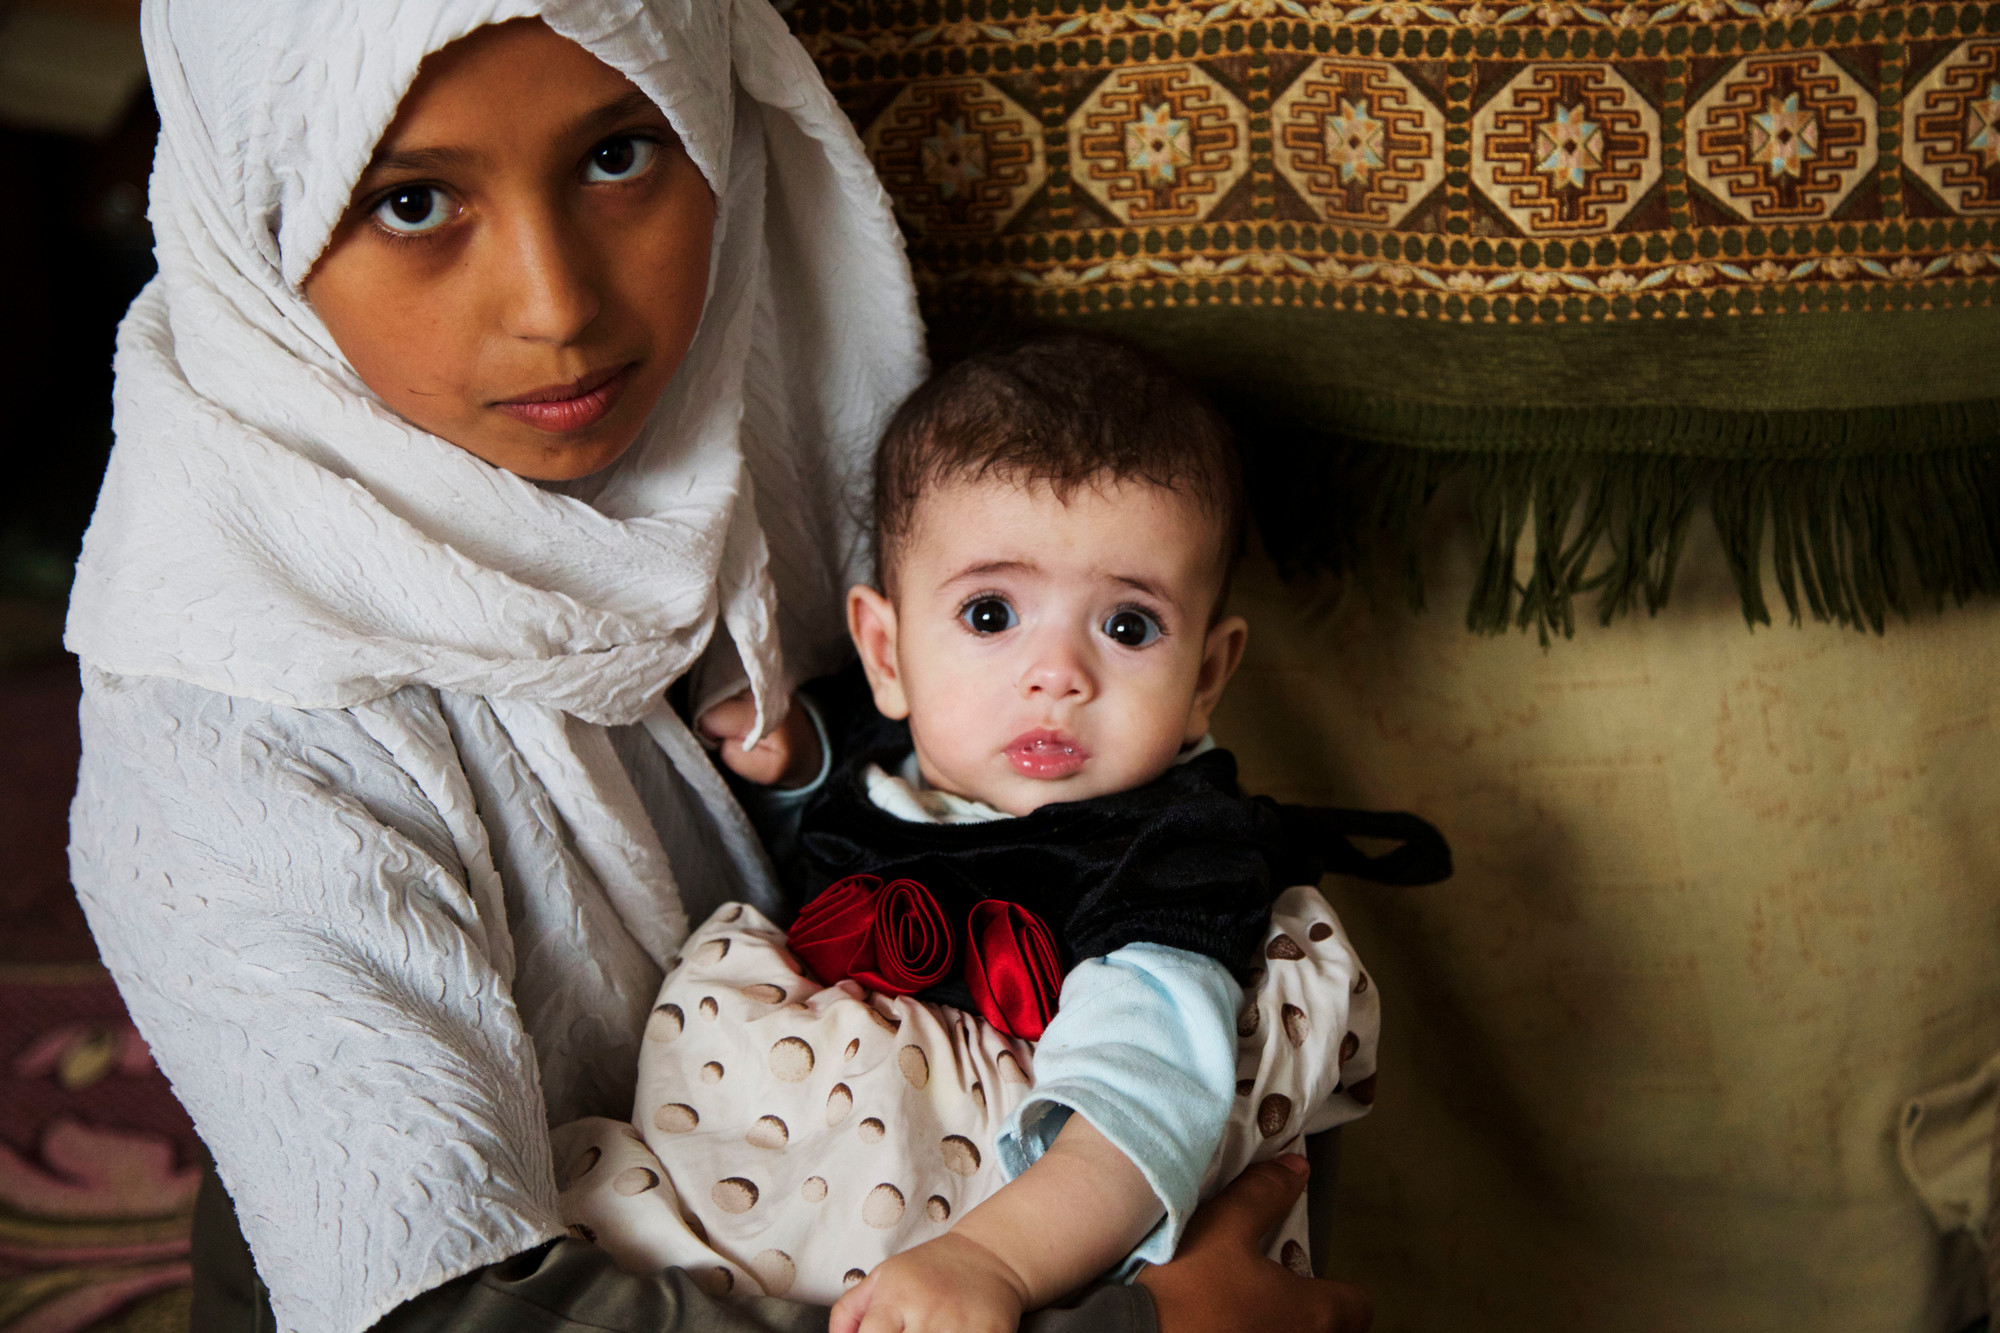 A woman holds a baby in her arms.